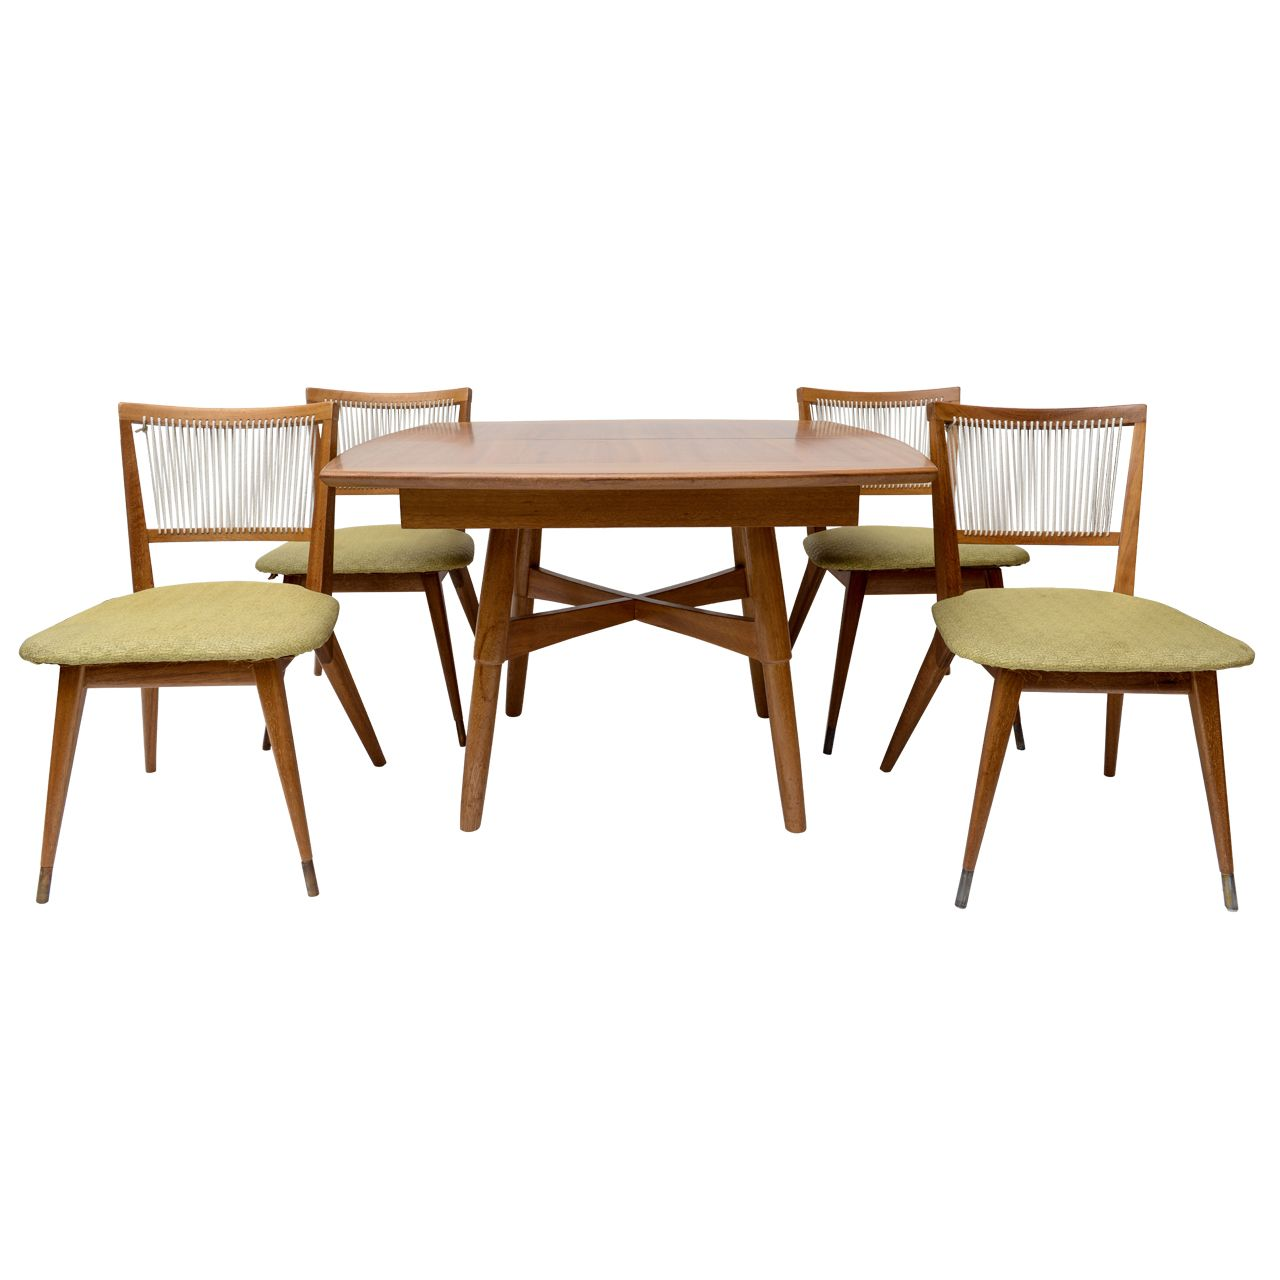 John Keal For Brown Saltman Dining Table And Chairs Table Dining Table Chairs Table And Chairs